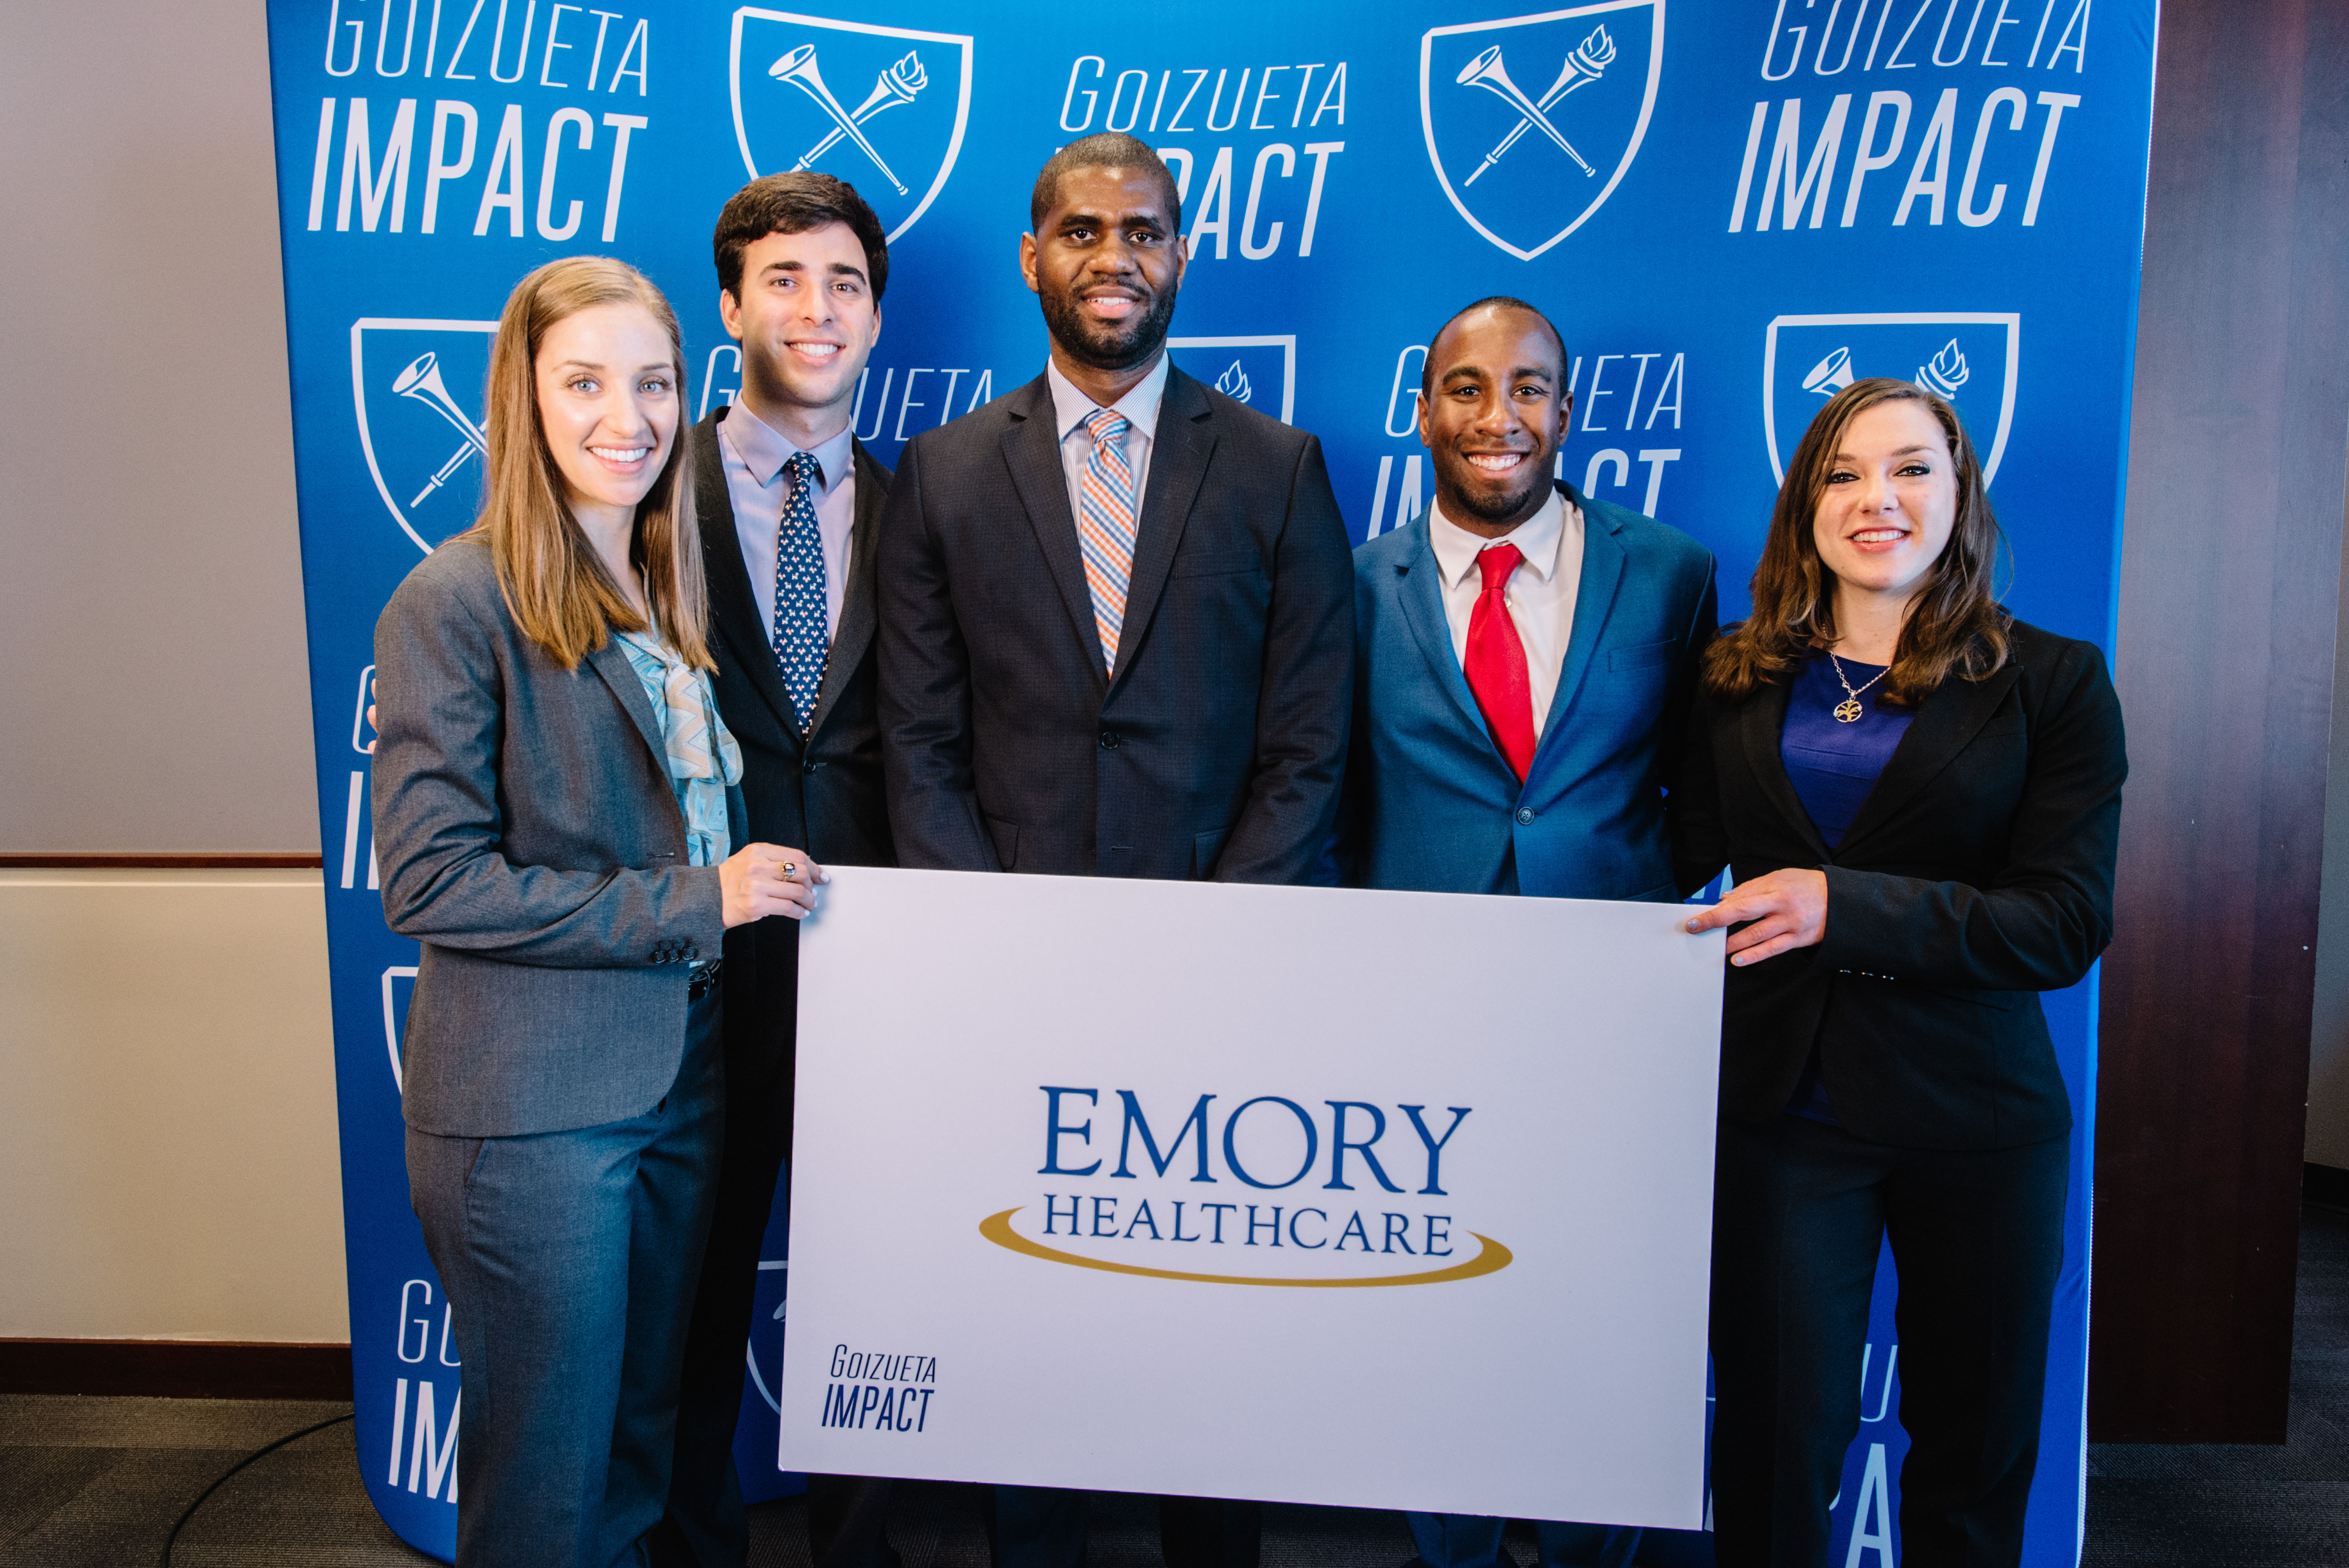 0051001-18SN:MAY 10, 2018: The Goizueta Business School hosted faculty, alumni and students for the Impact 360 Client Day event at Emory University in Atlanta, GA. Stephen Nowland/Emory University